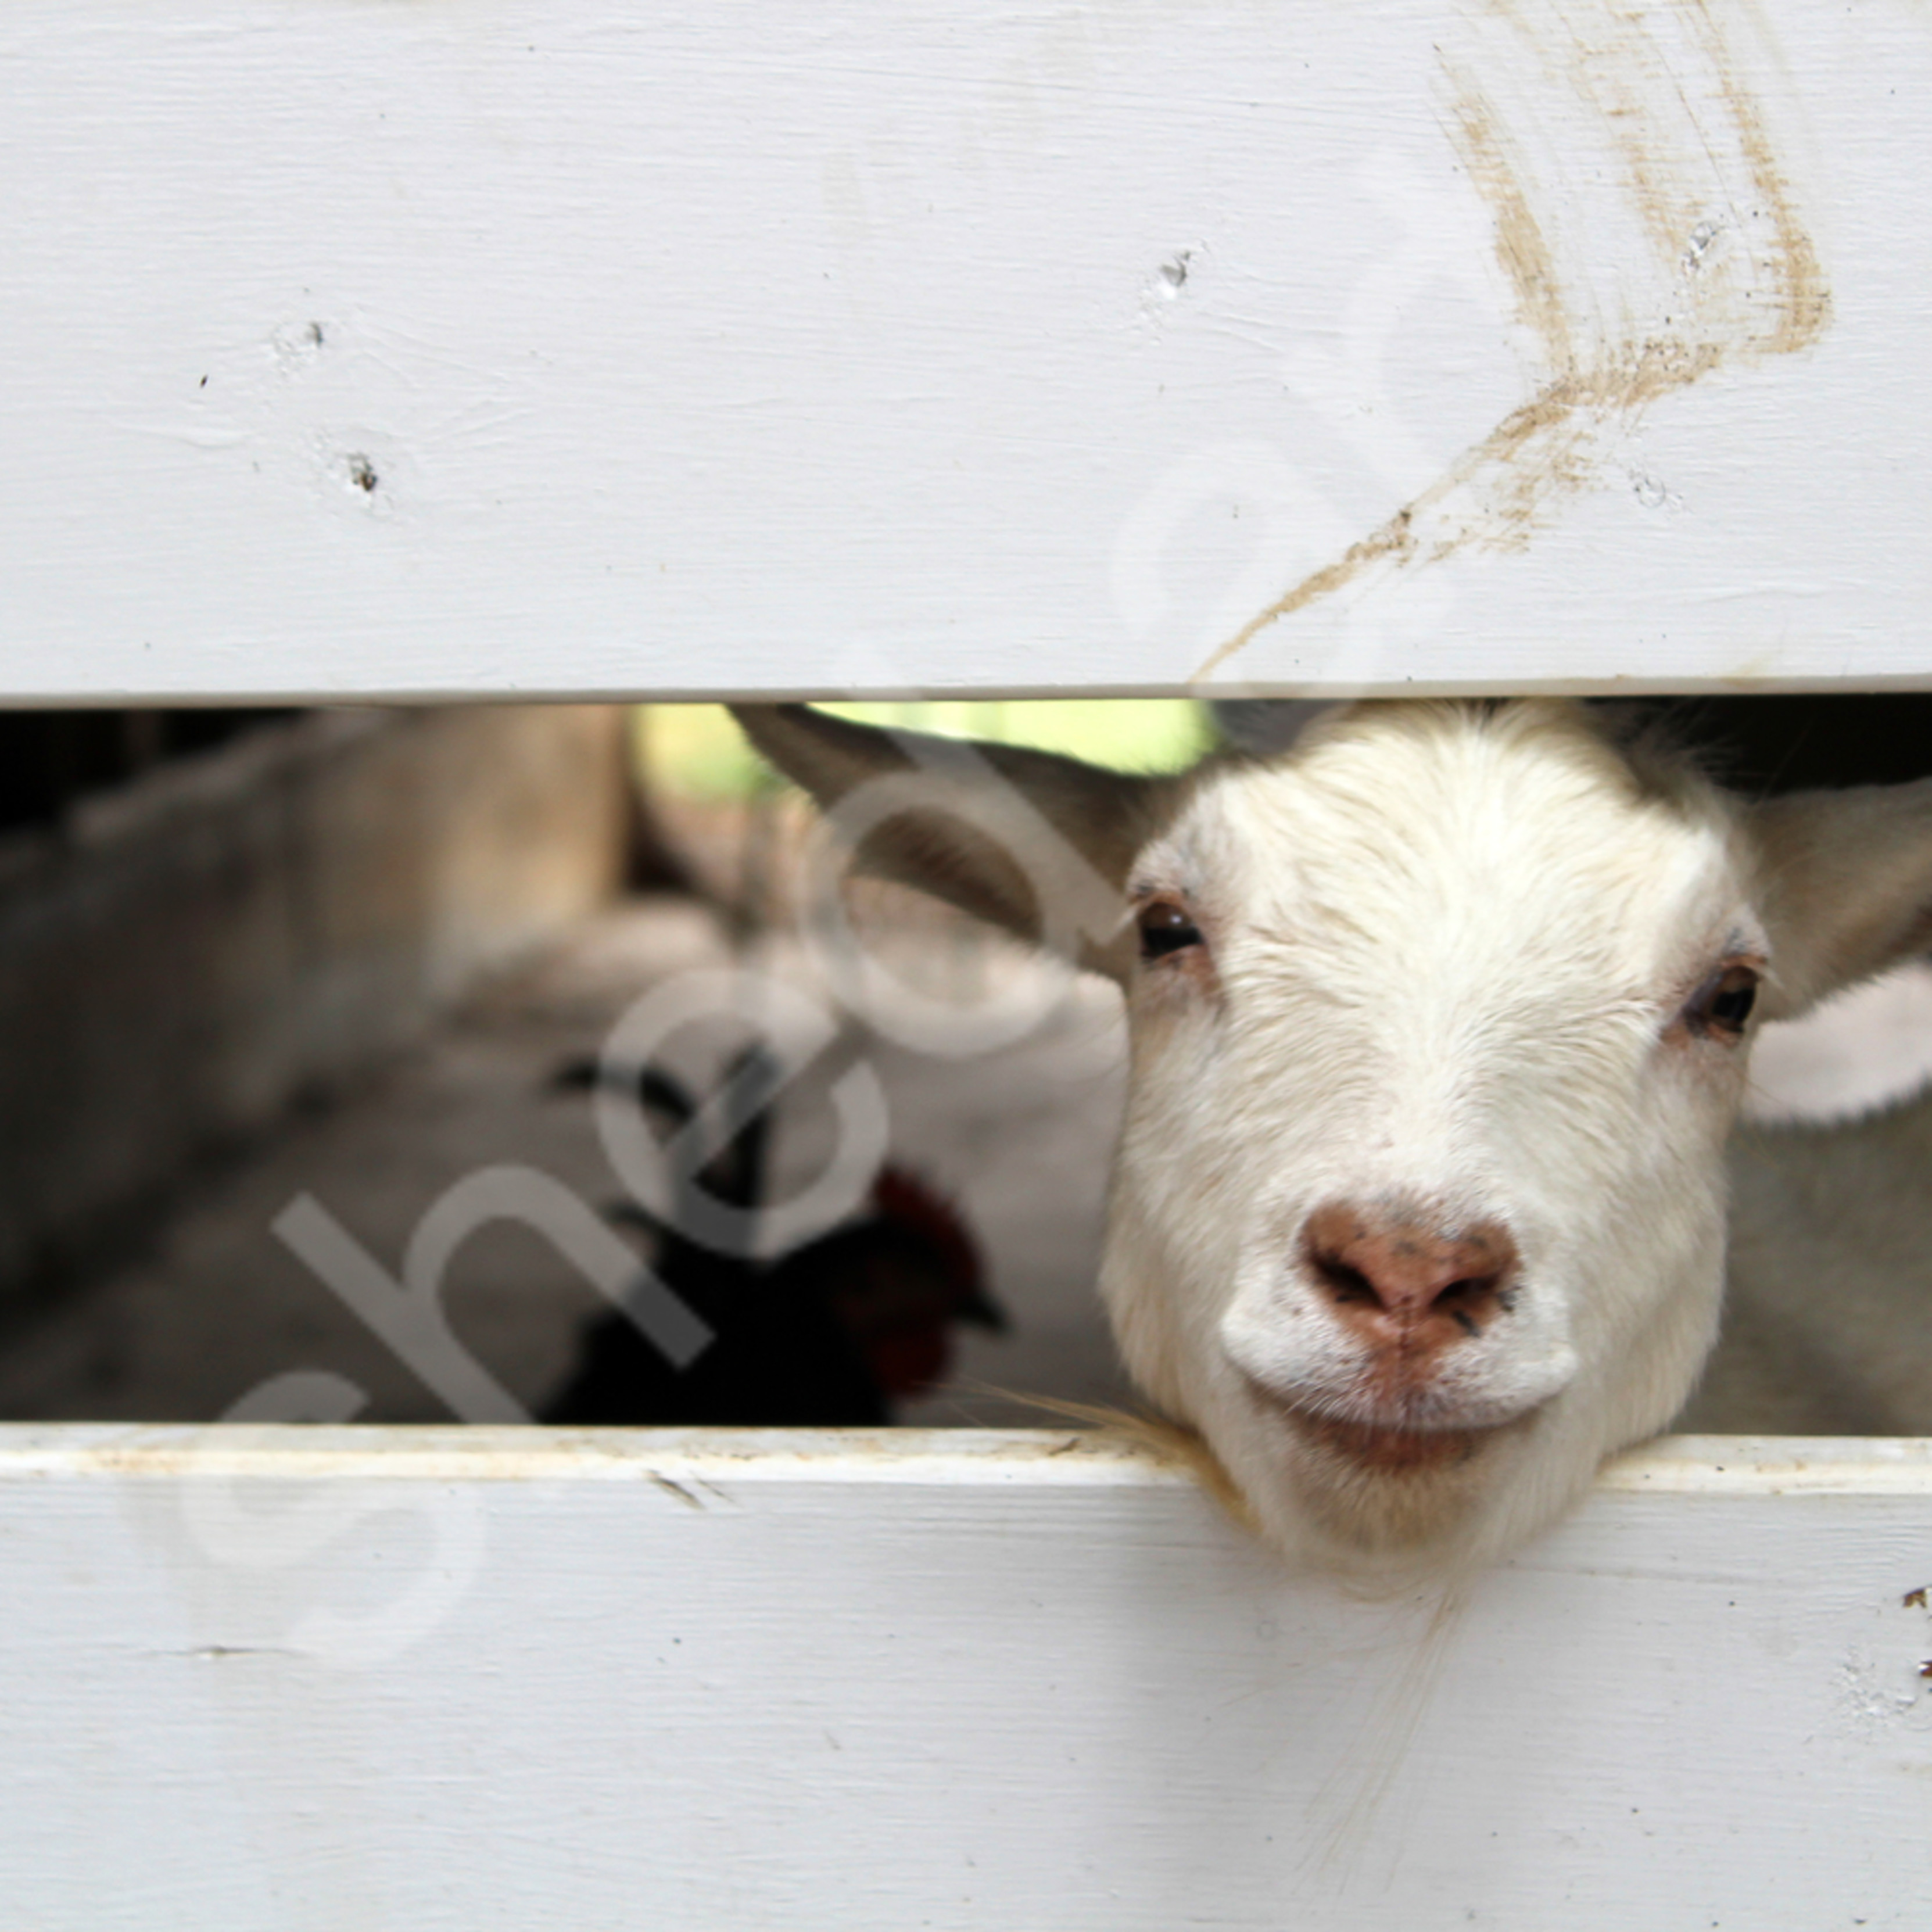 Smiling goat a3nkxw